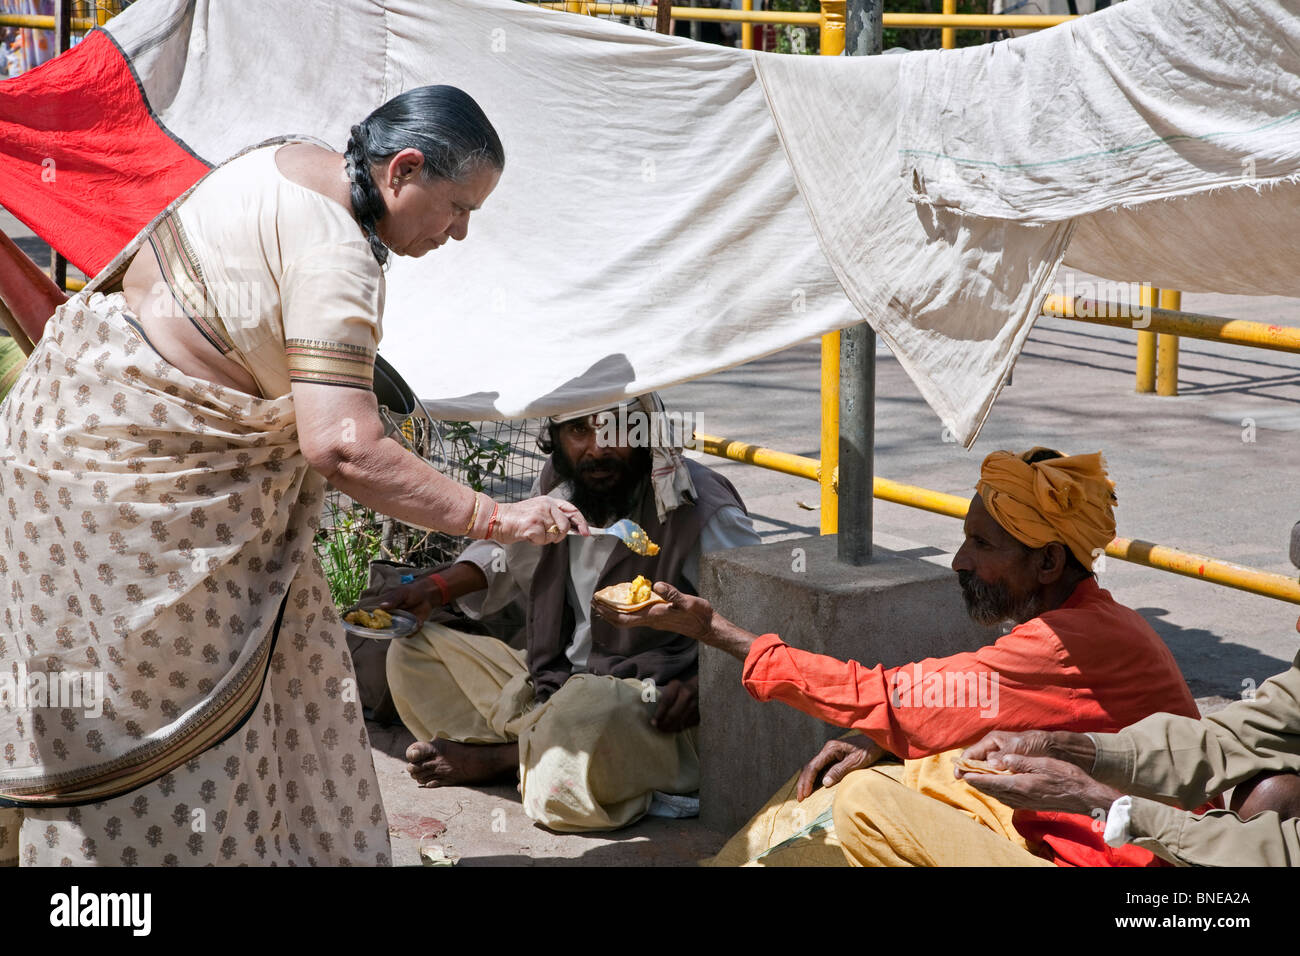 Essay On The Beggar Problem In India